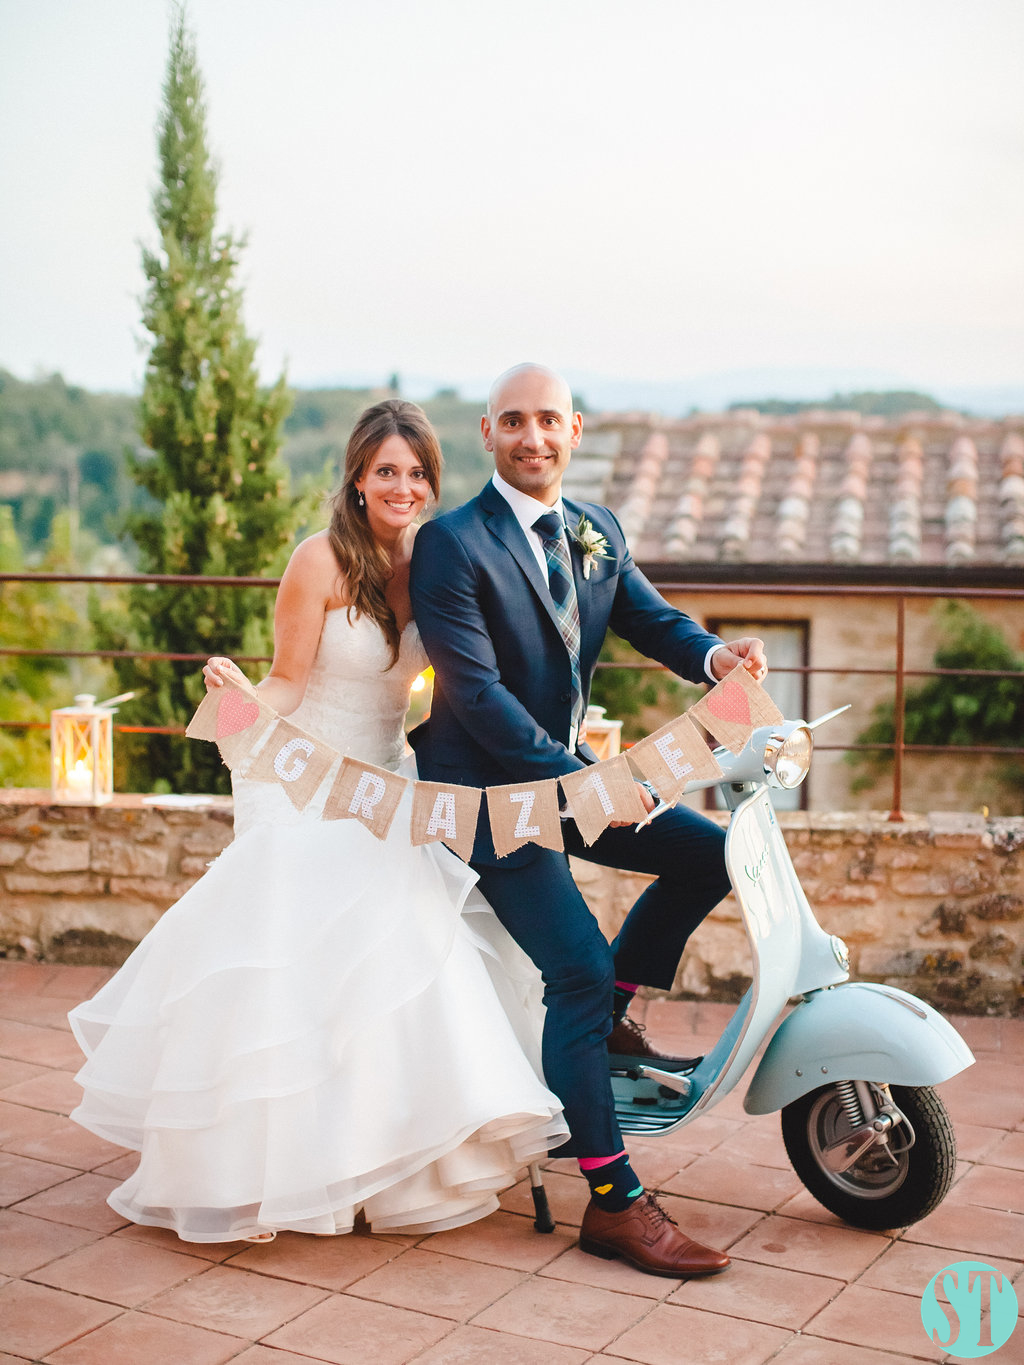 457Wedding in Florence Chianti